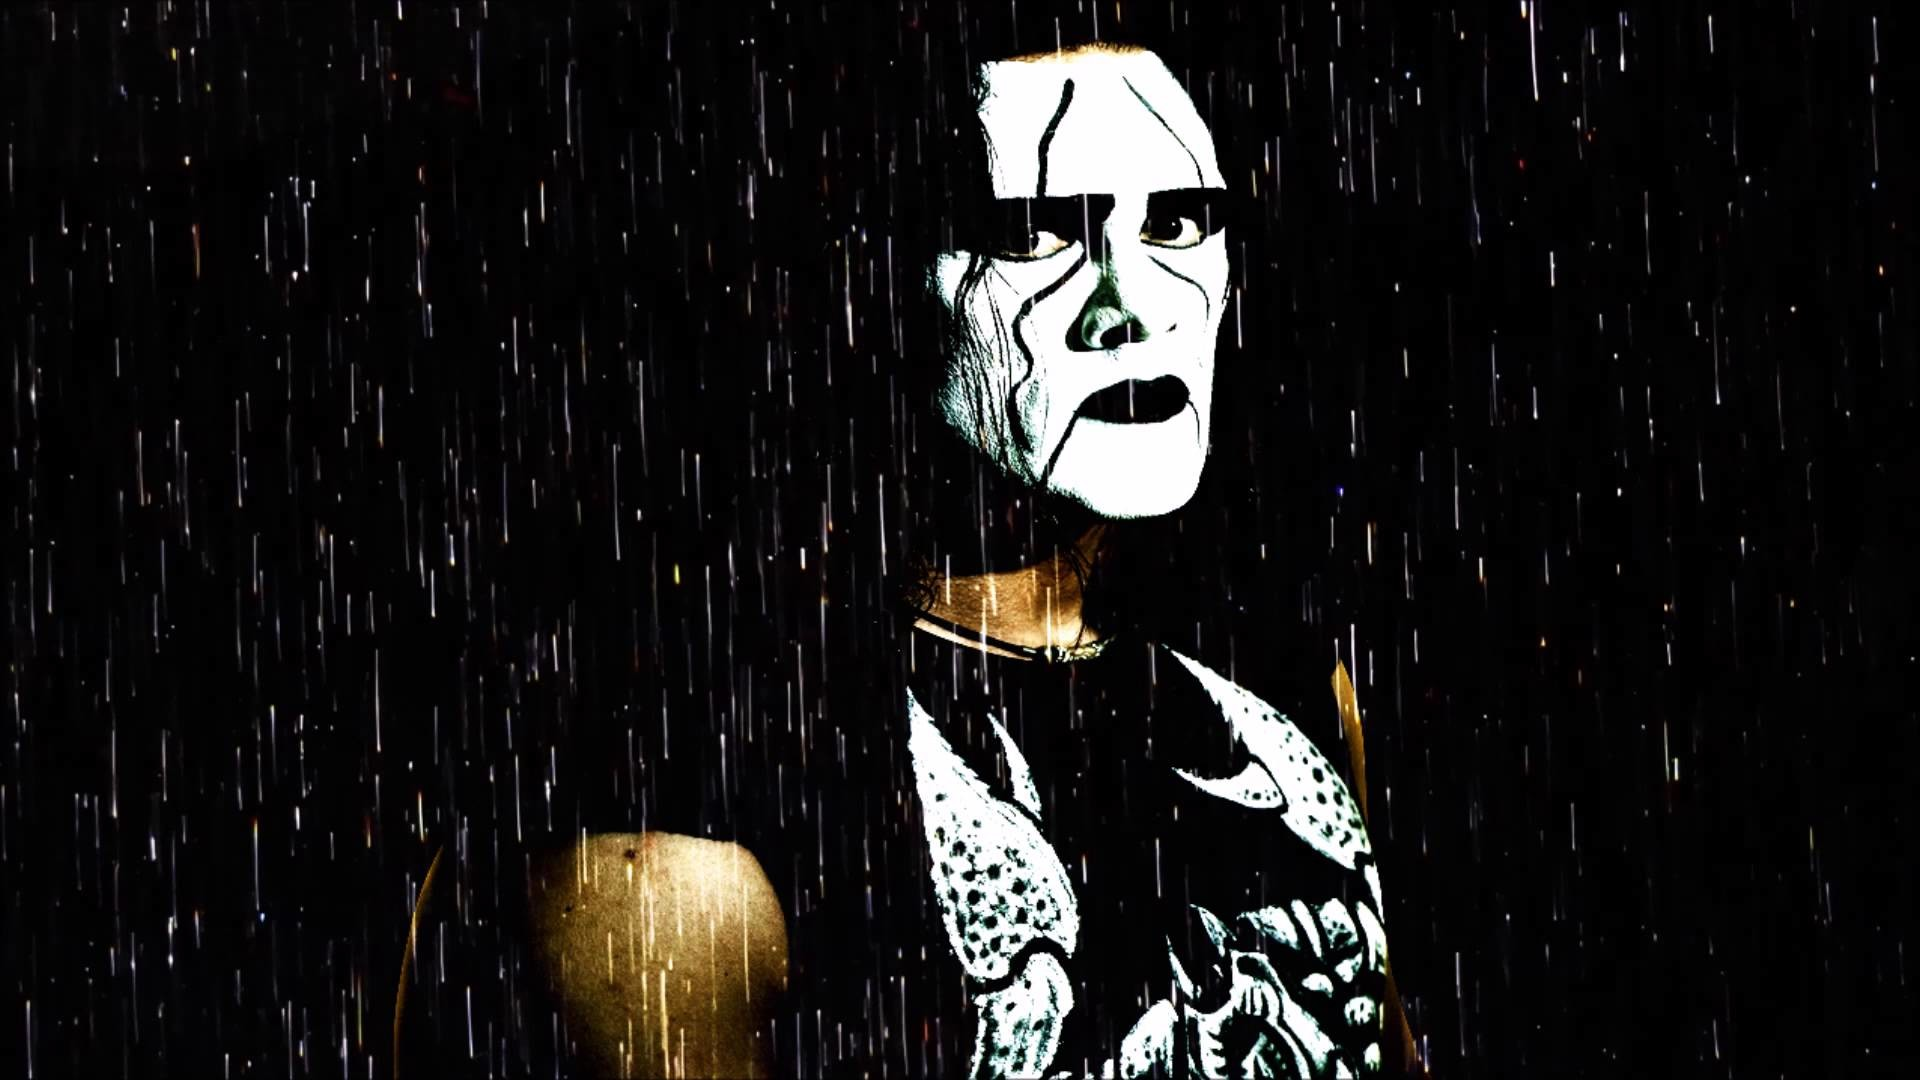 1920x1080 Sting WCW Wallpapers - WallpaperSafari | Best Games Wallpapers .